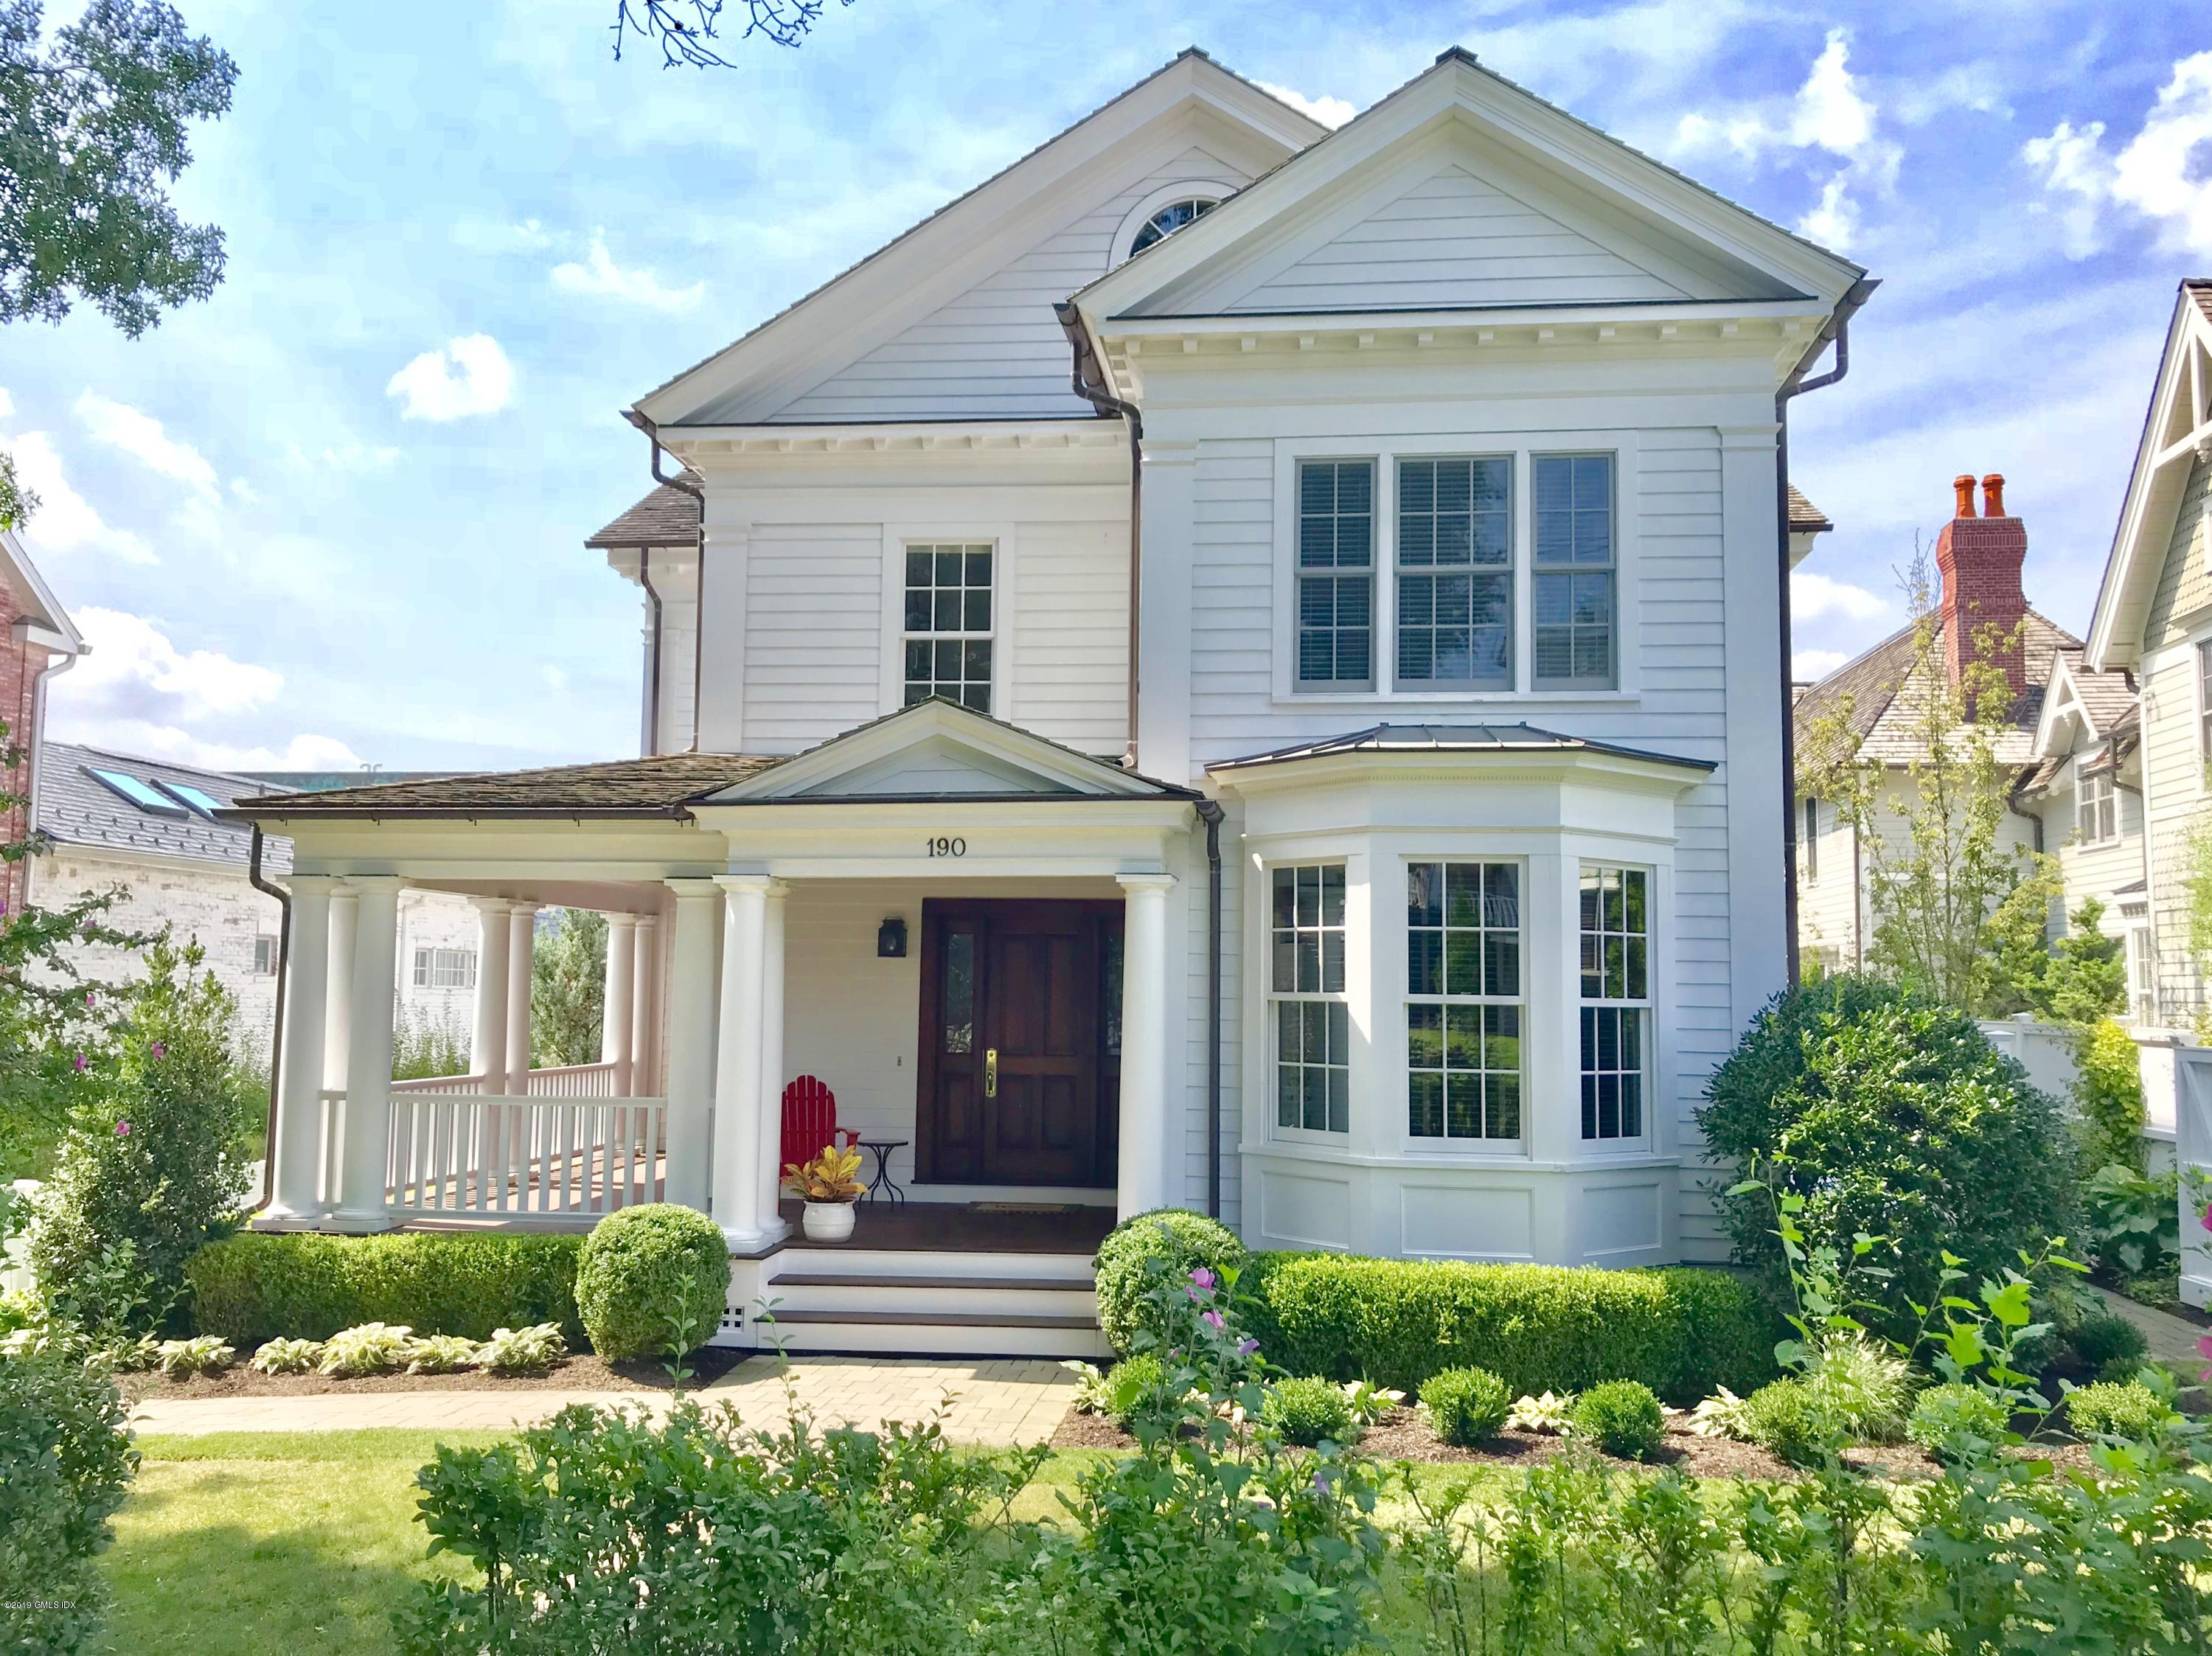 190 Milbank Avenue,Greenwich,Connecticut 06830,4 Bedrooms Bedrooms,4 BathroomsBathrooms,Condominium,Milbank,108020